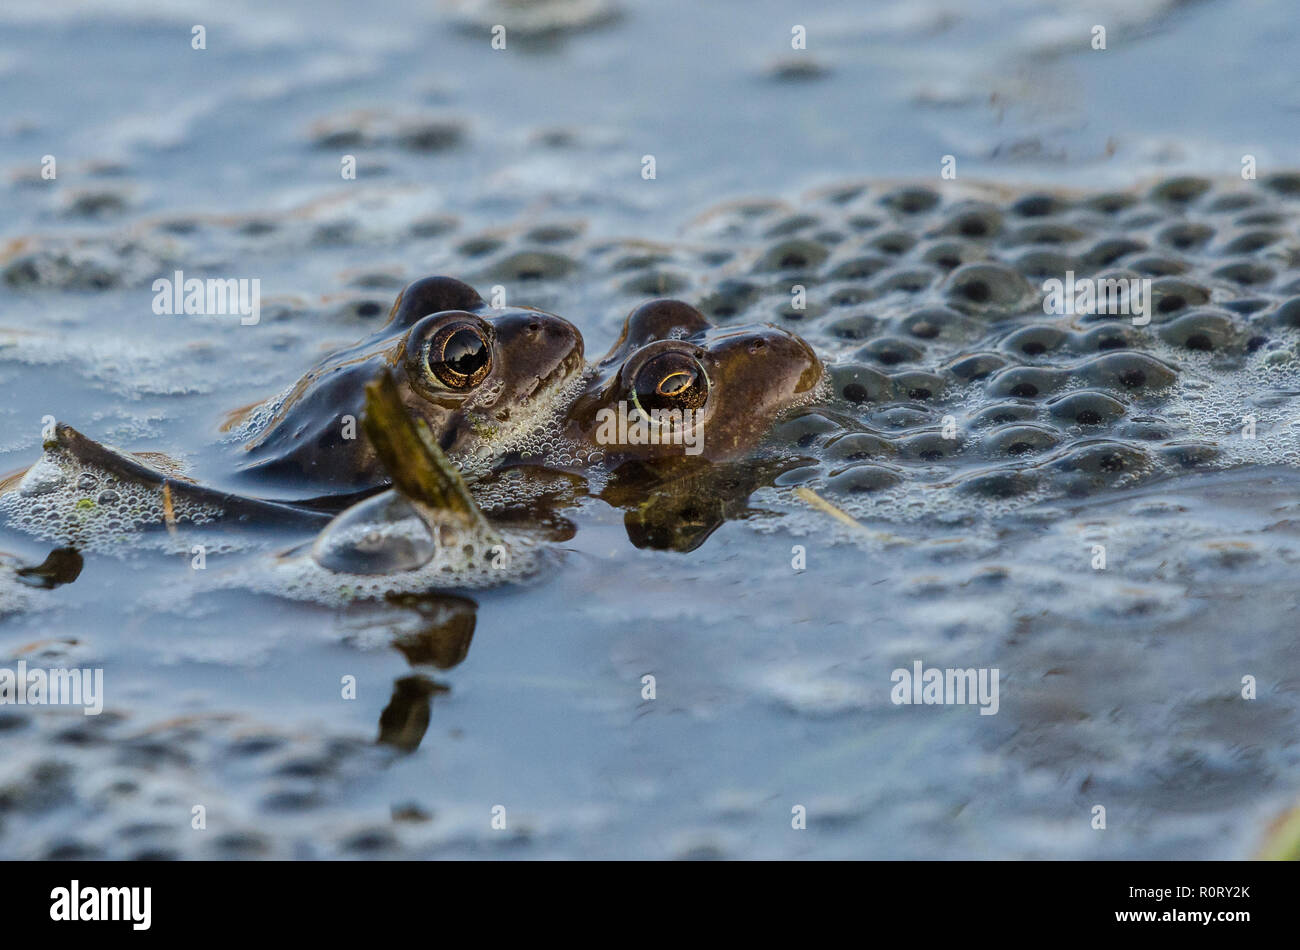 Pair of common frogs Rana temporaria mating amongst  frog spawn on a spring morning. - Stock Image